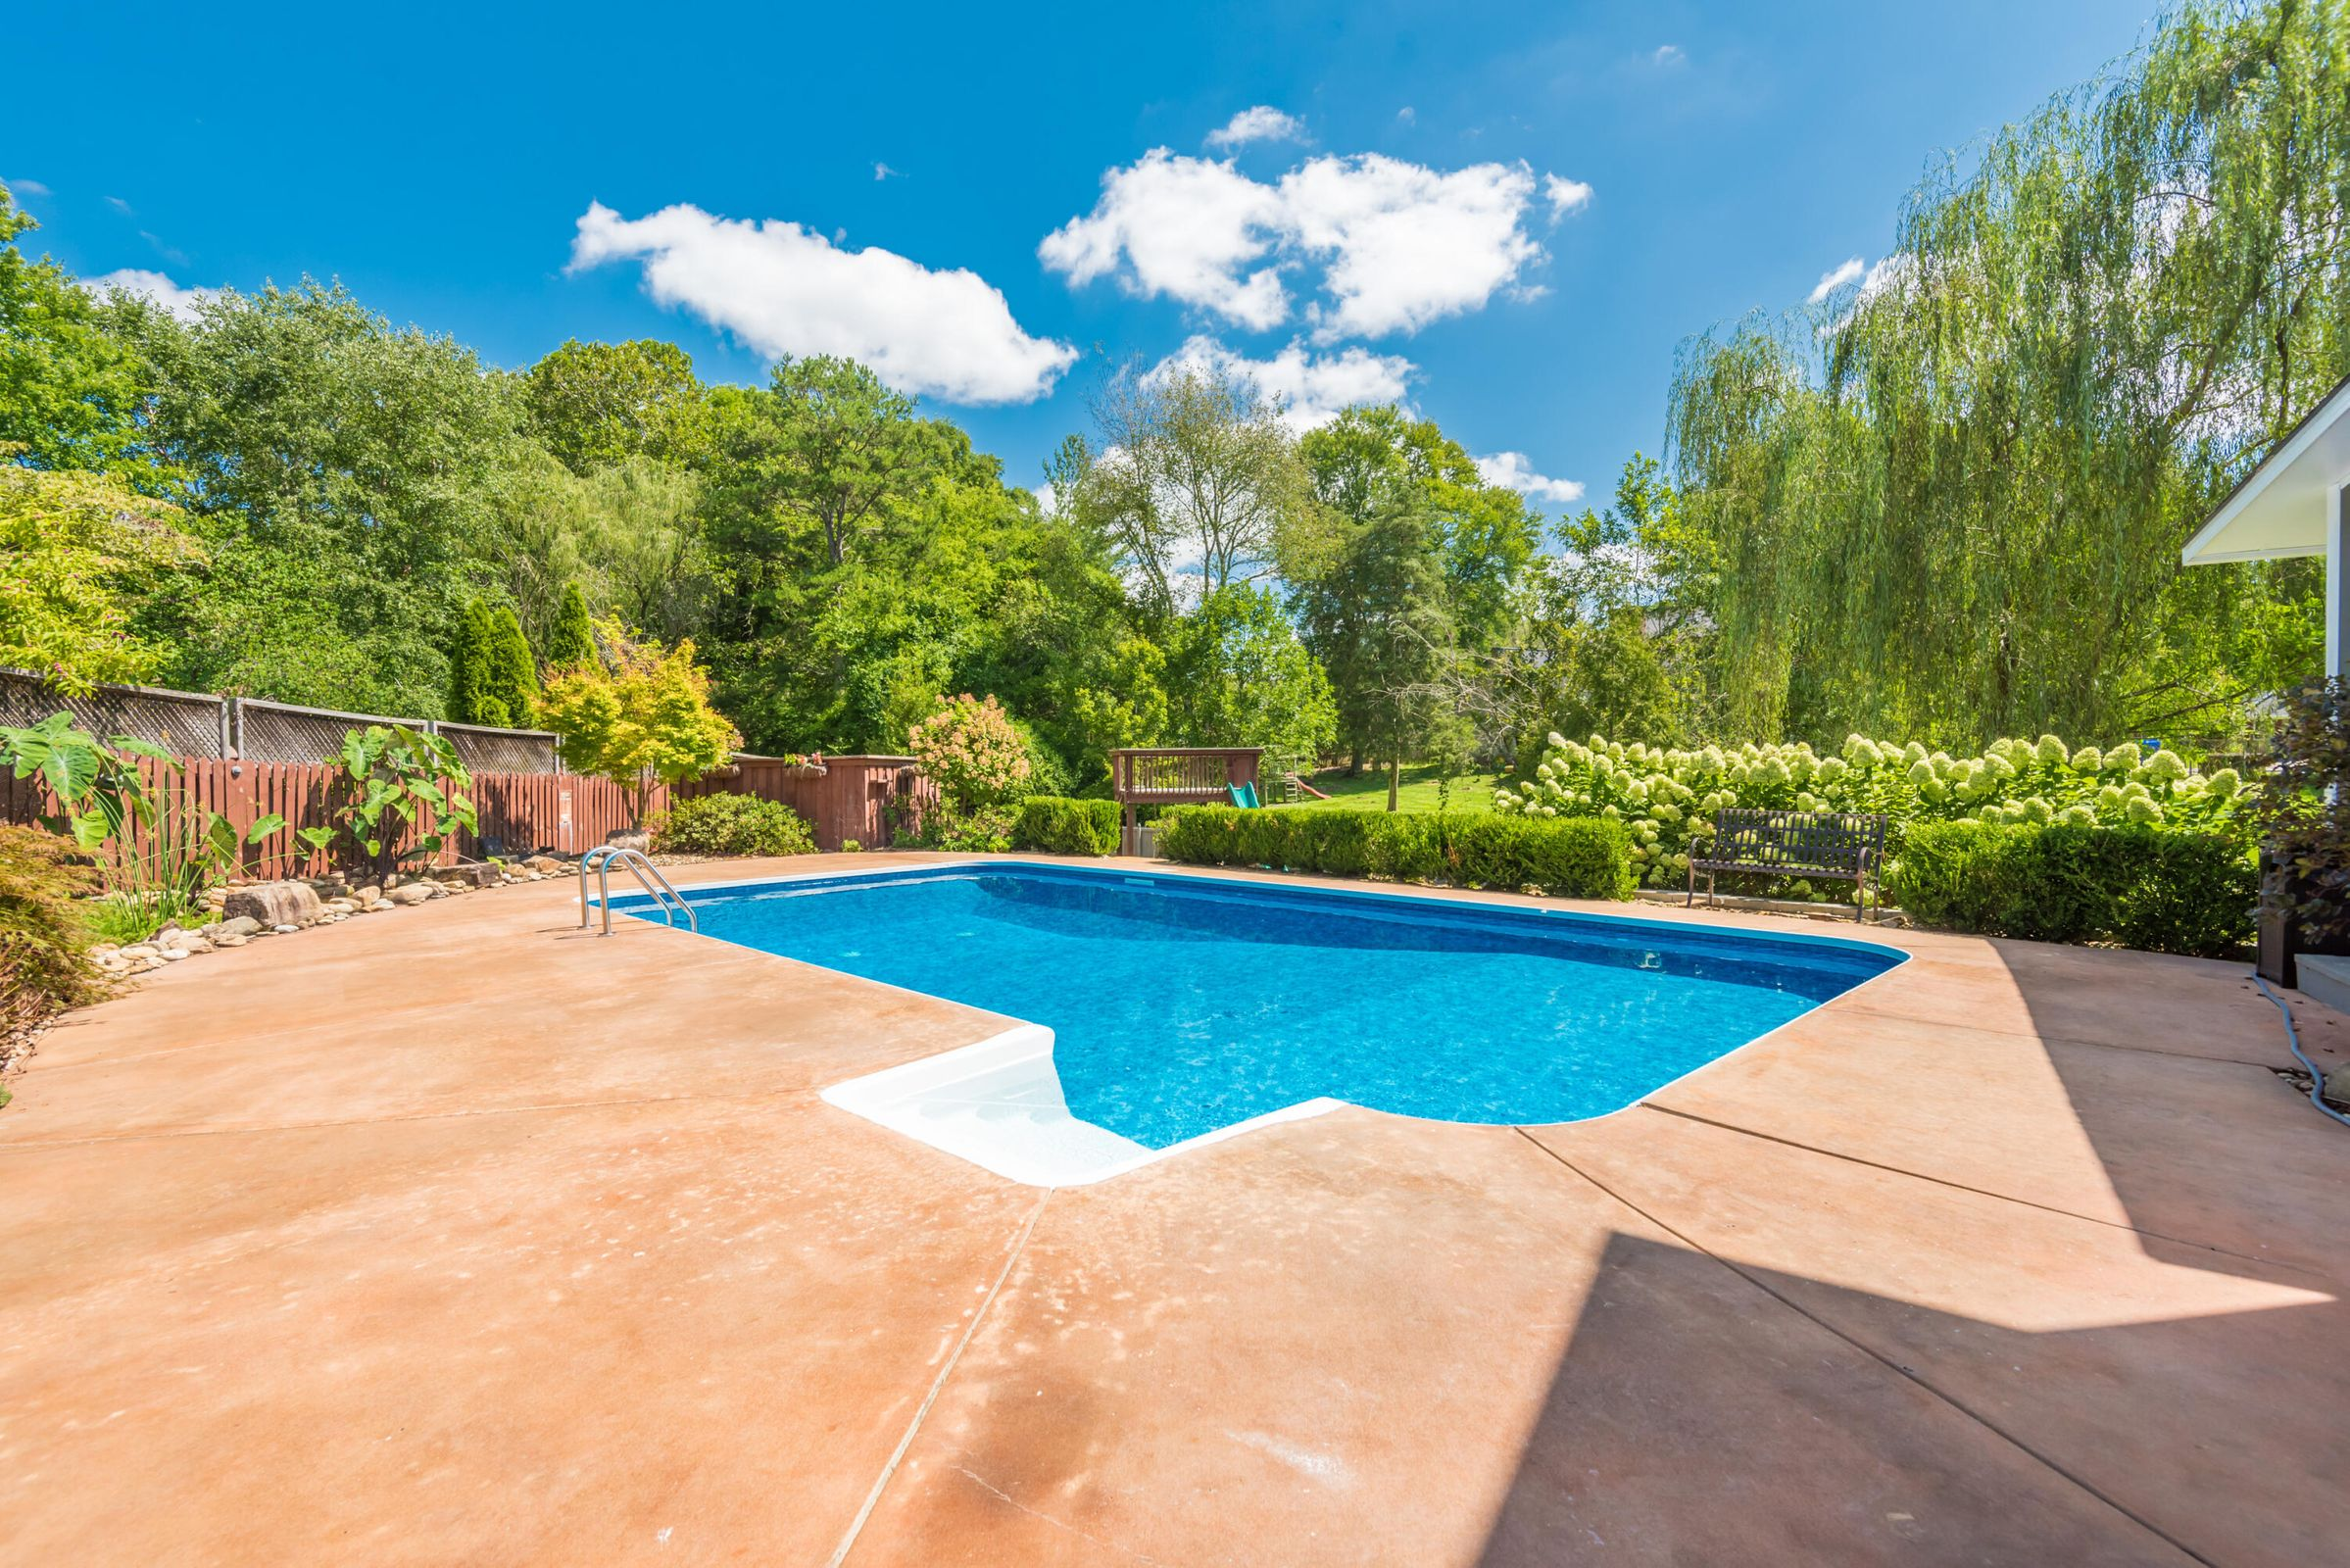 Pool Area - Great for Entertaining!